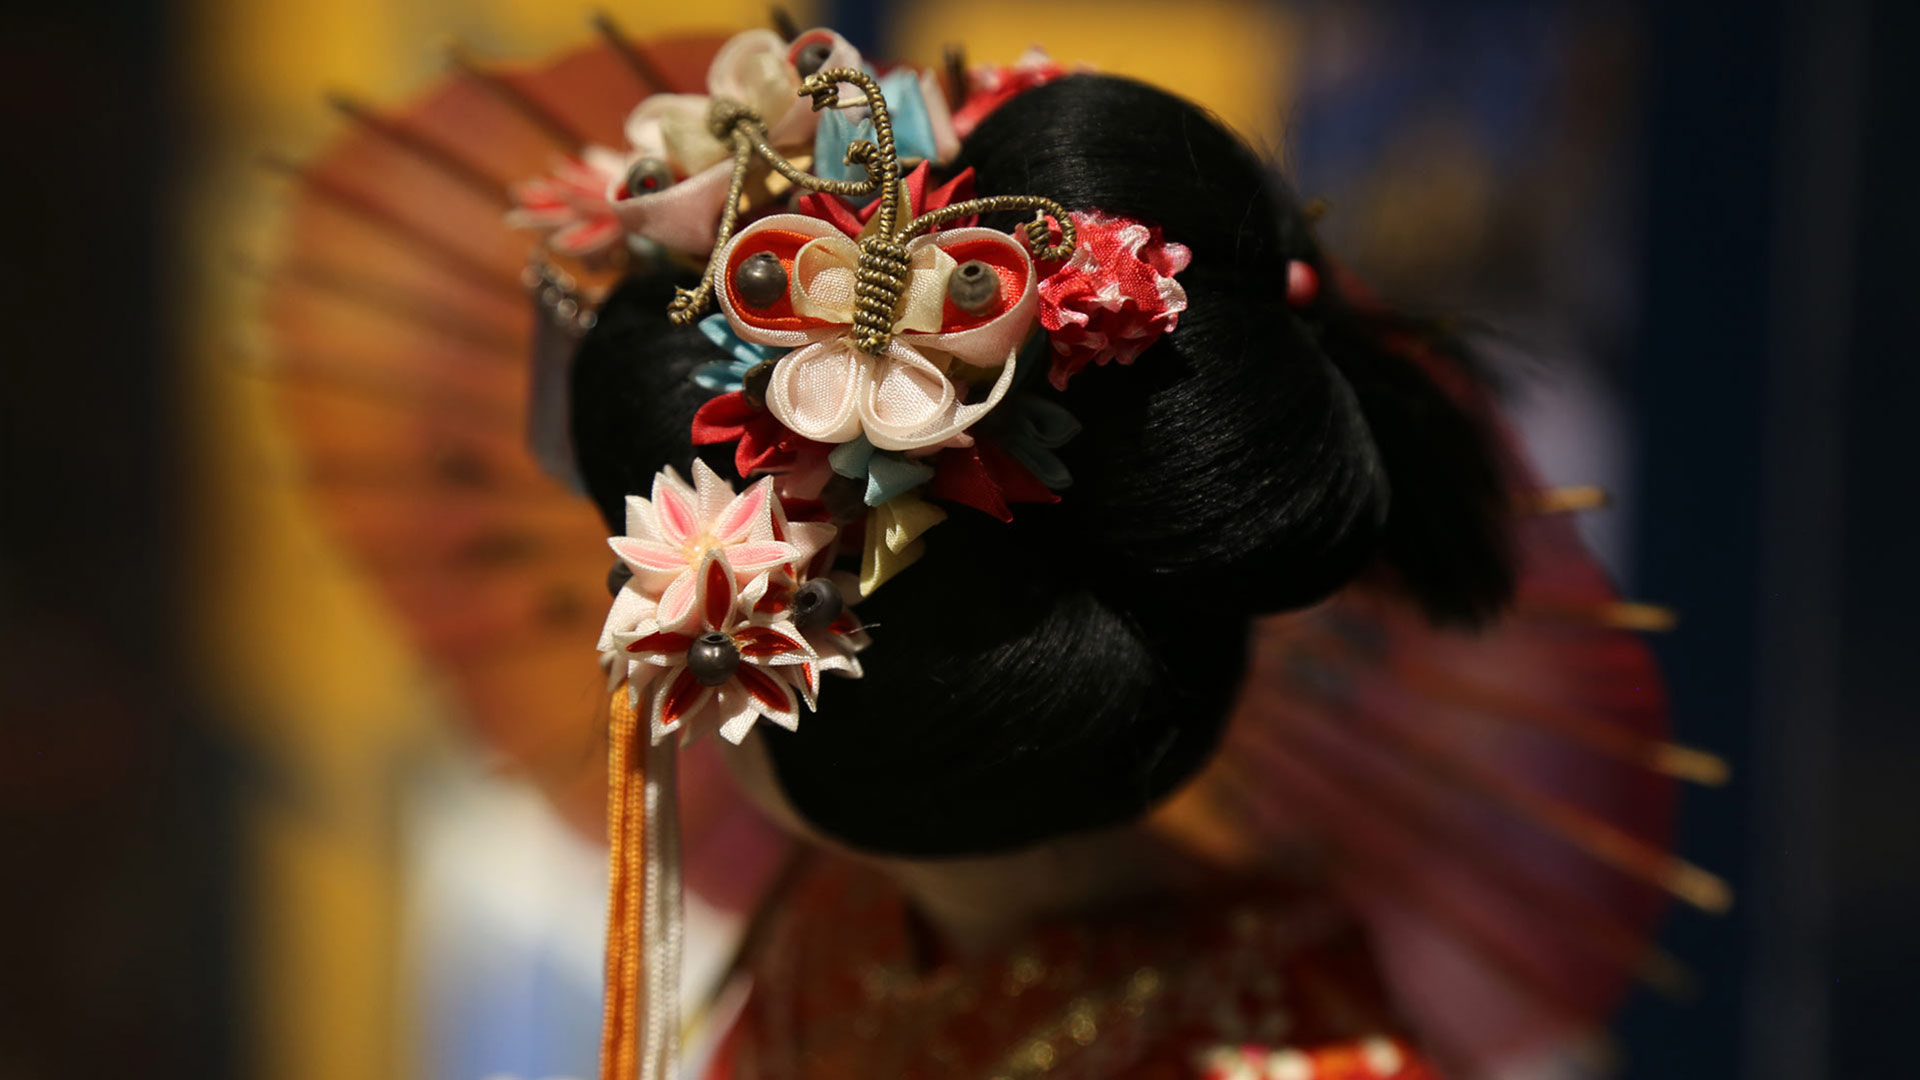 closeup of the beads in the doll's headdress